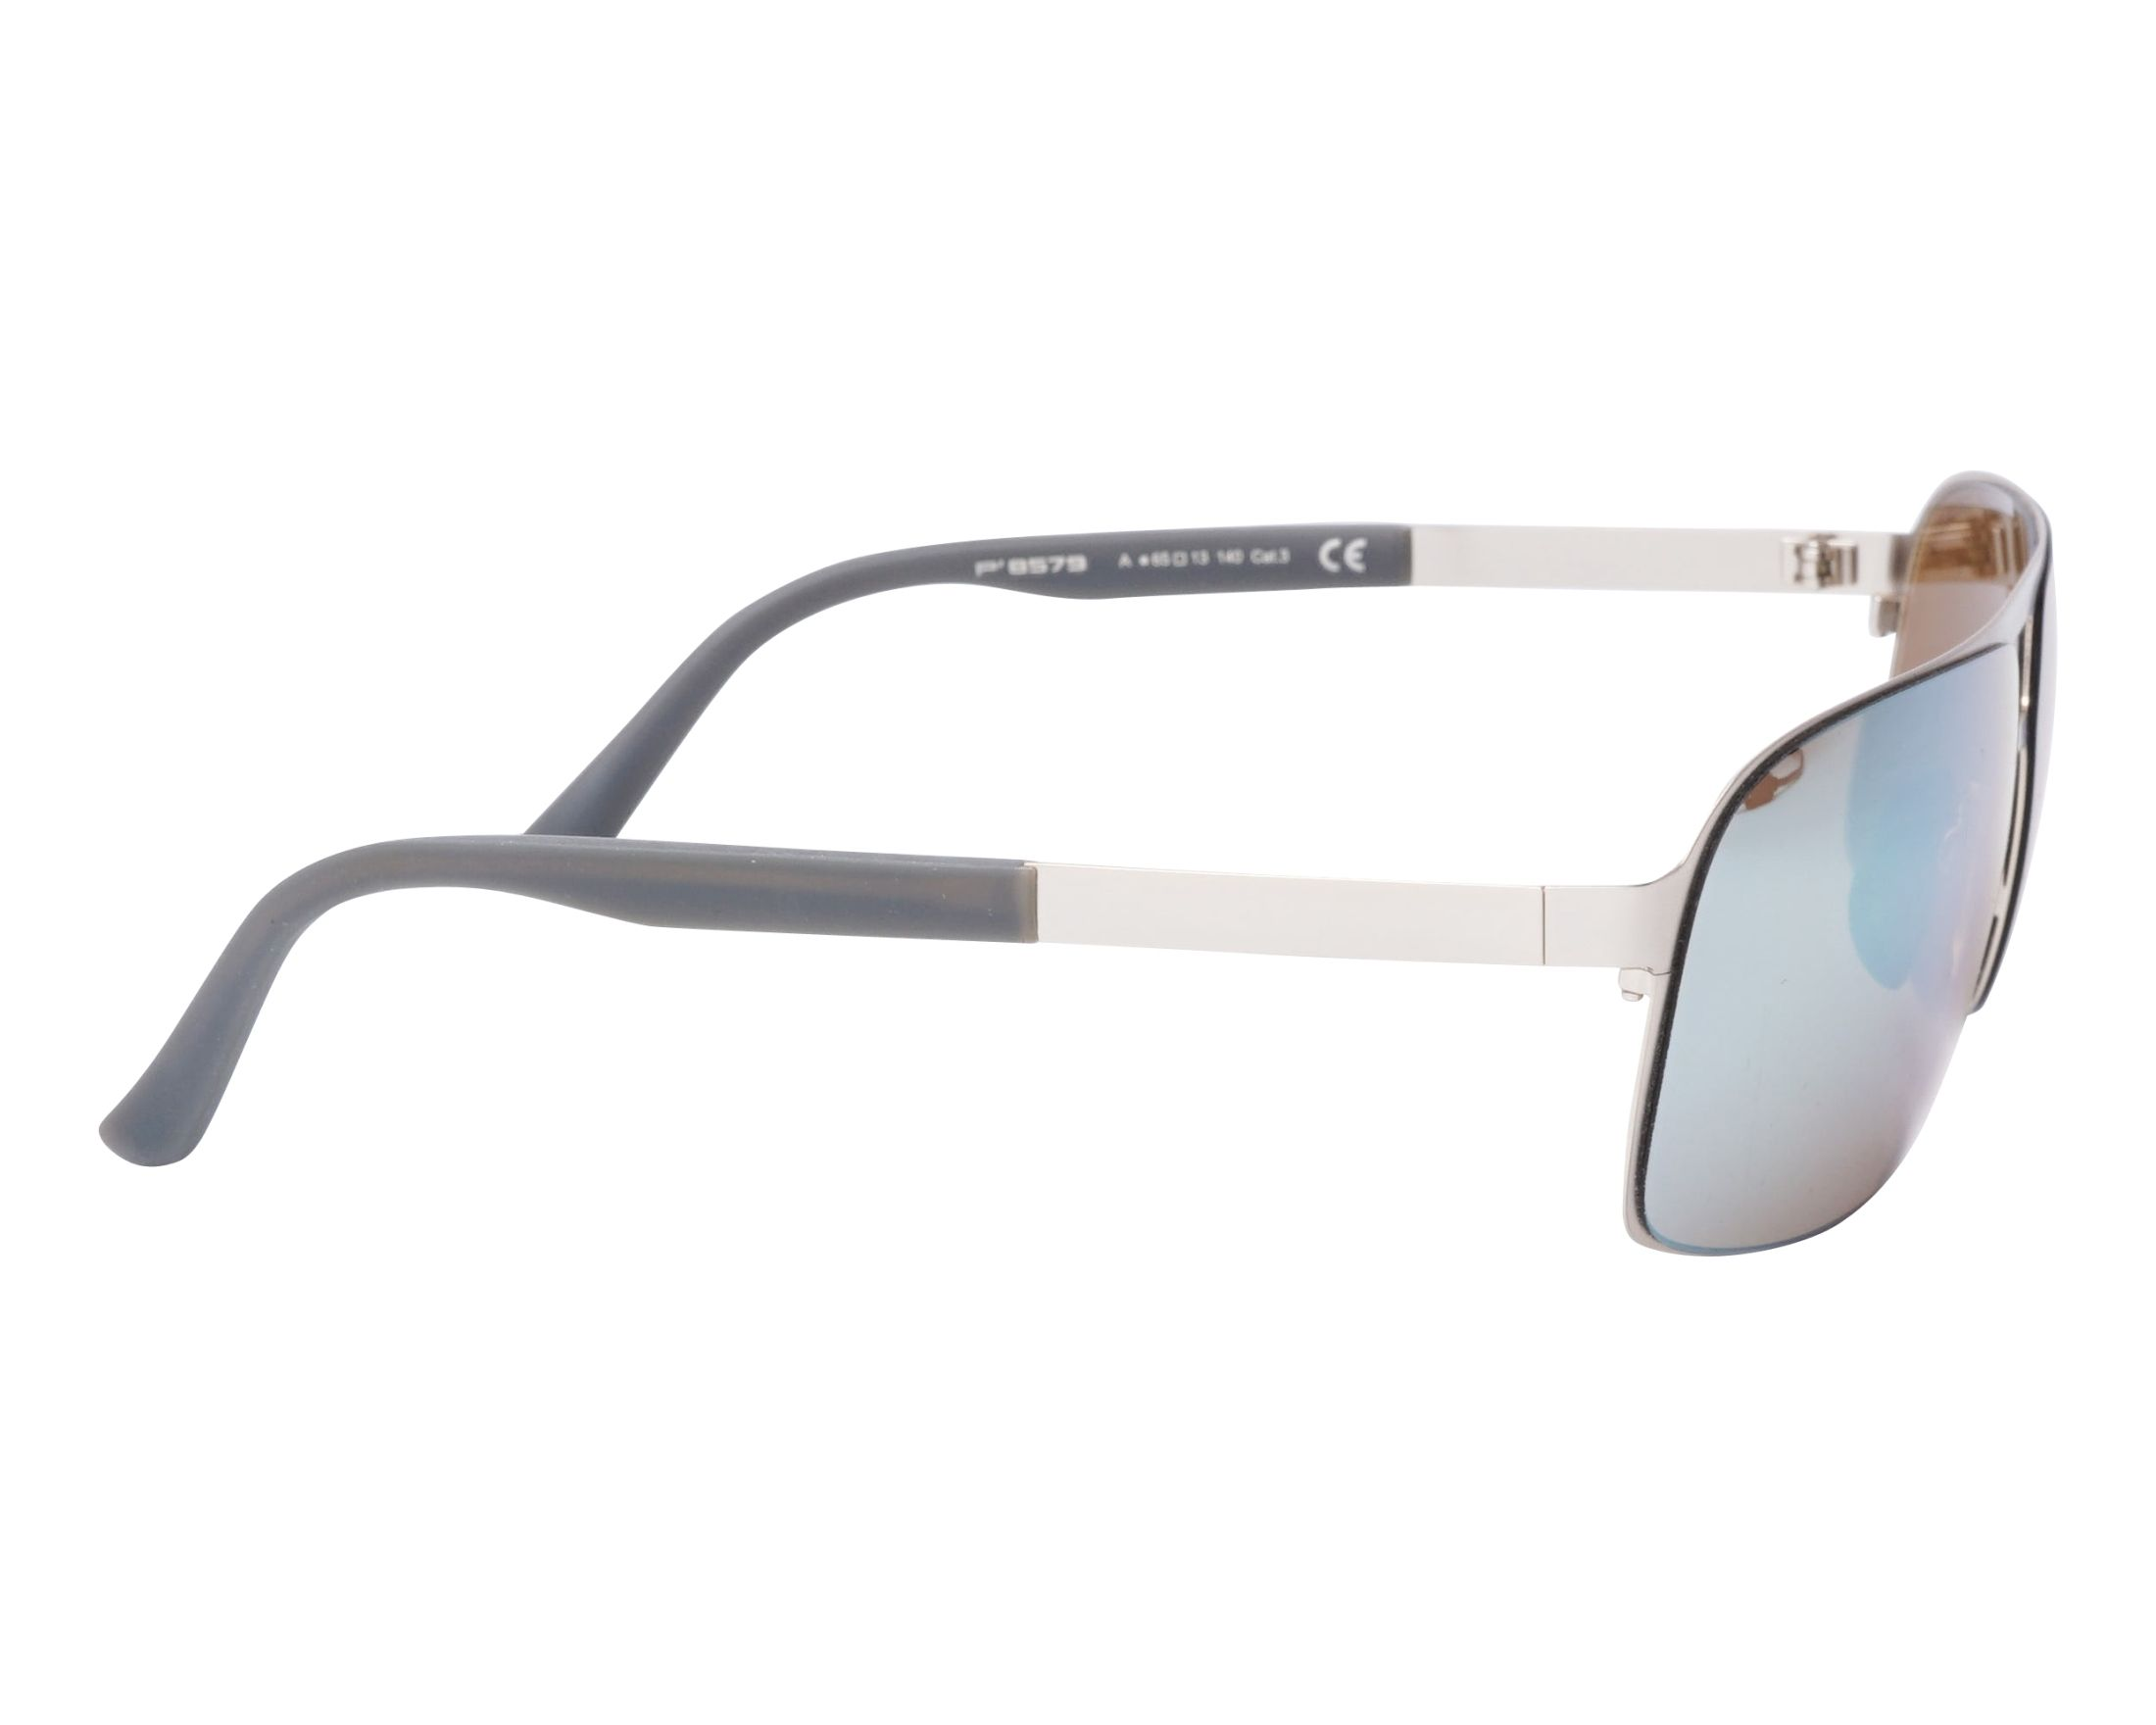 aefec215476 Sunglasses Porsche Design P-8579 A 65-13 Gold Grey side view